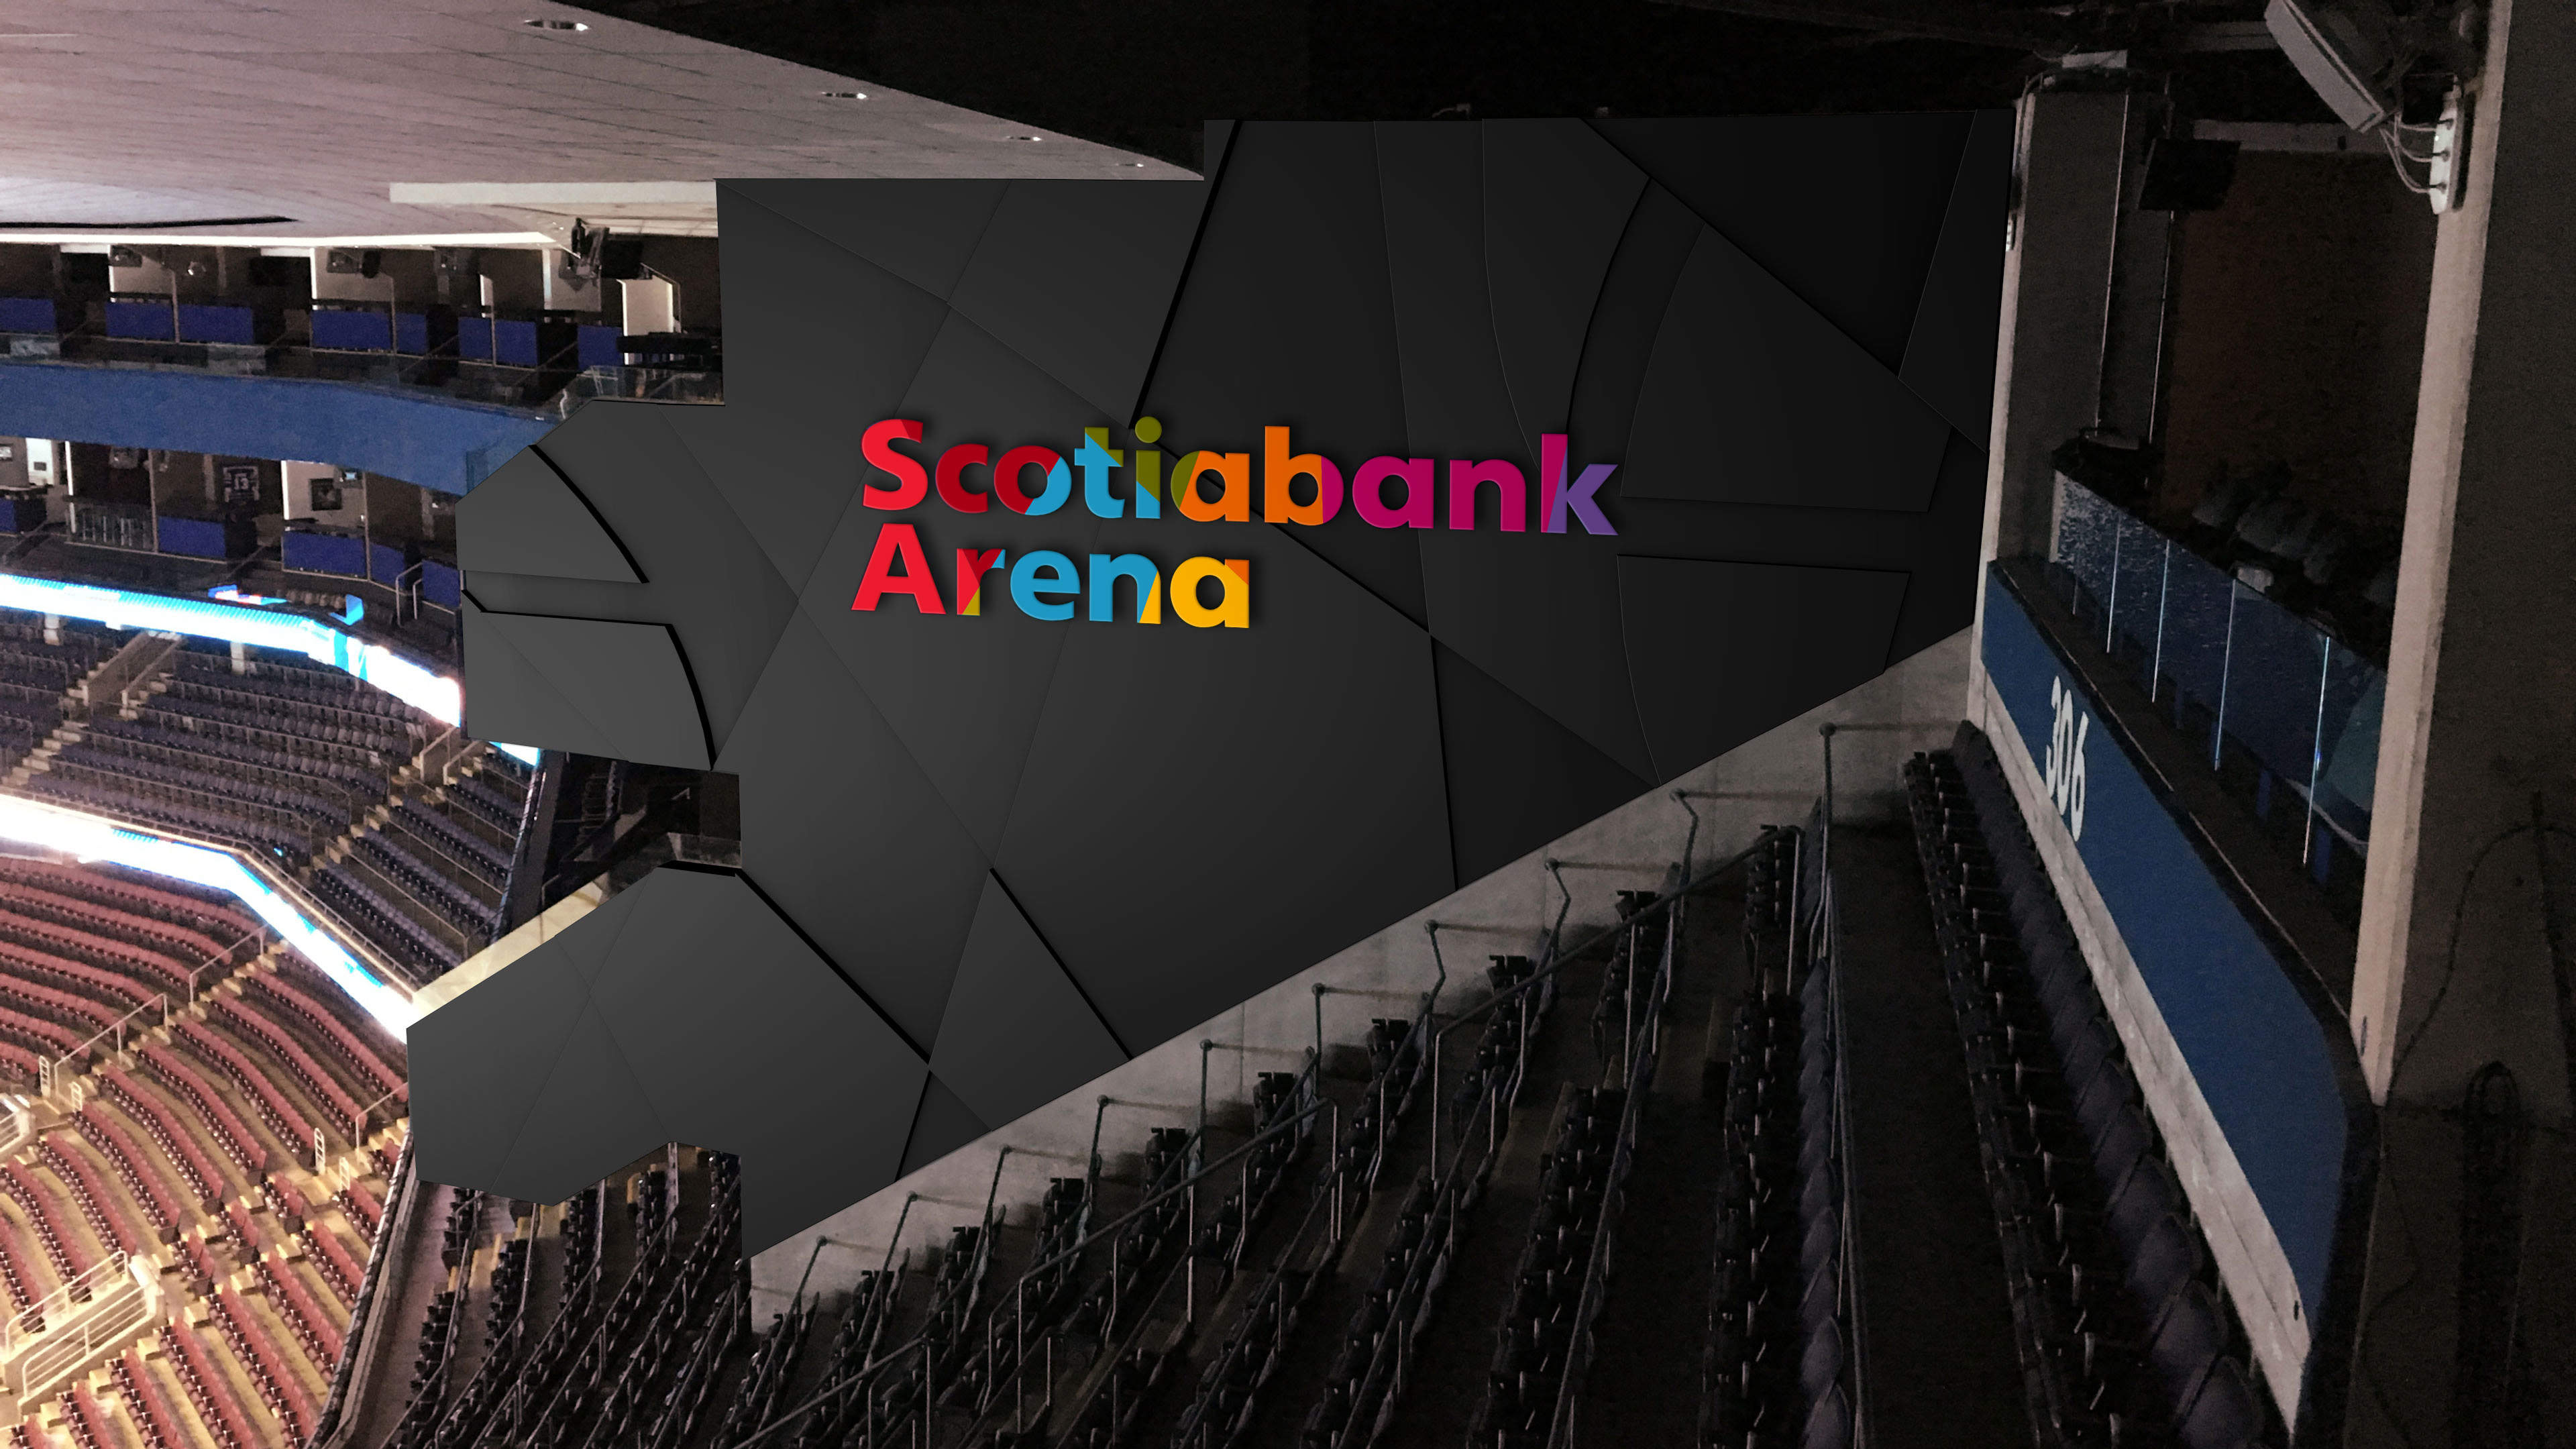 Scotiabank Arena Four Corners Energy - Scotiabank Arena: new name in record-breaking deal